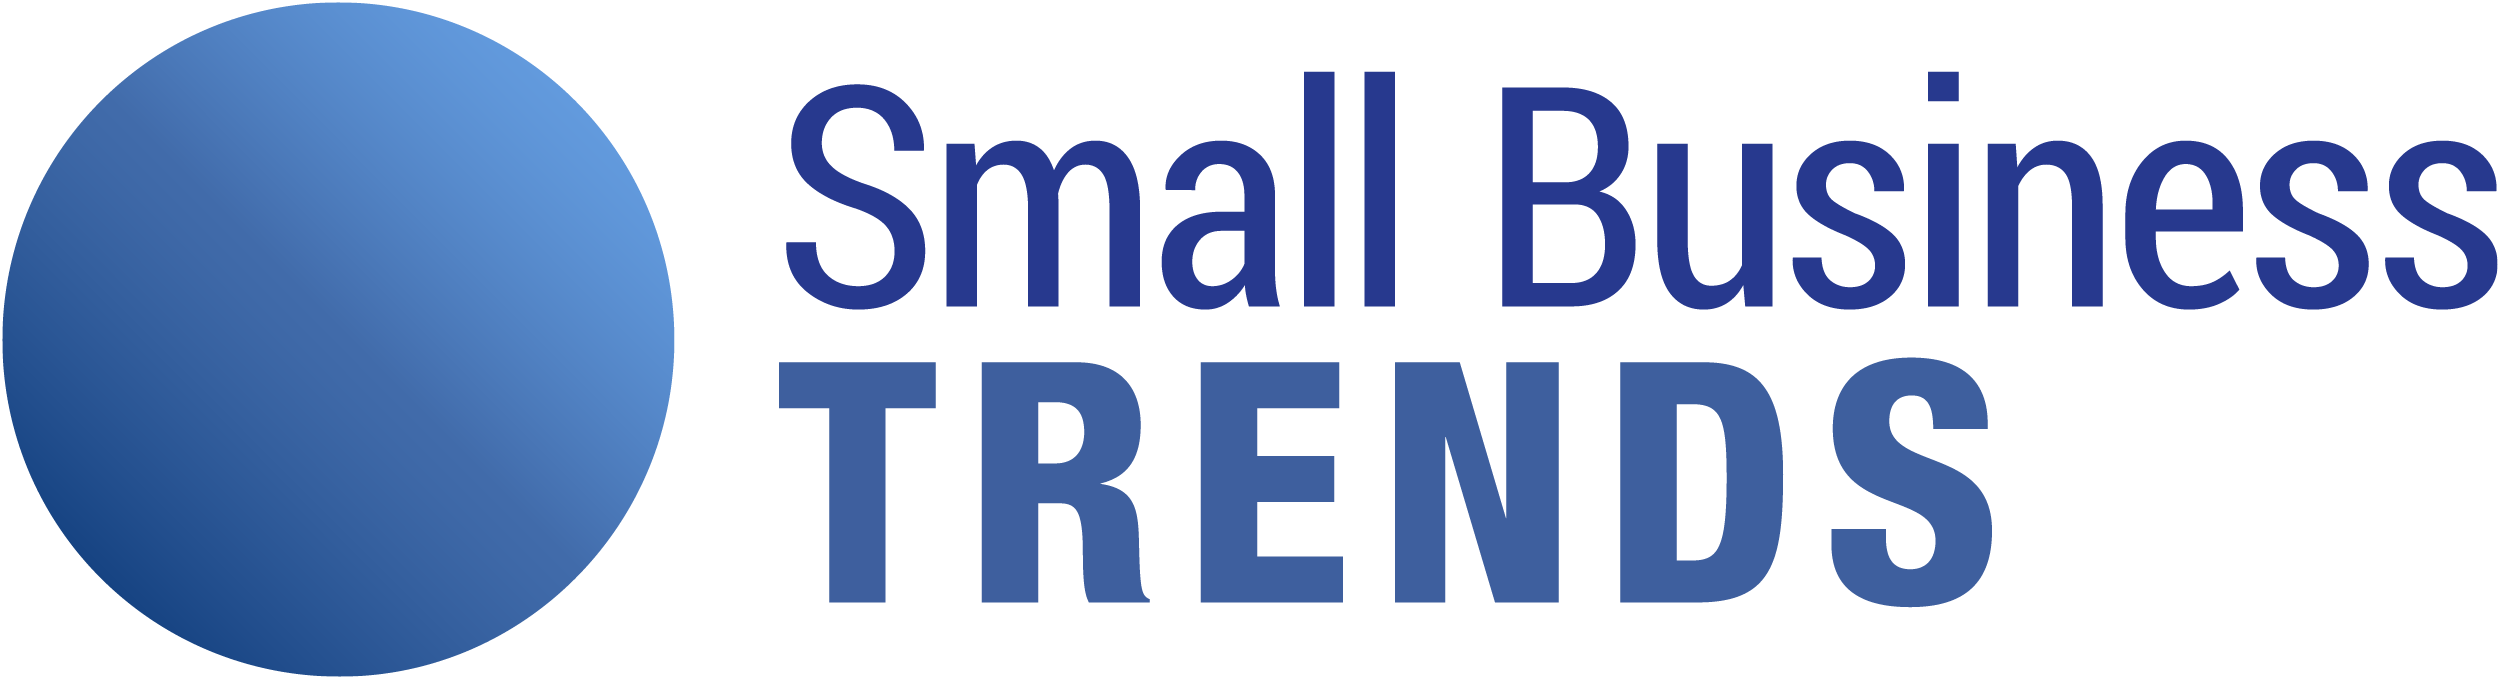 Small Business Trends